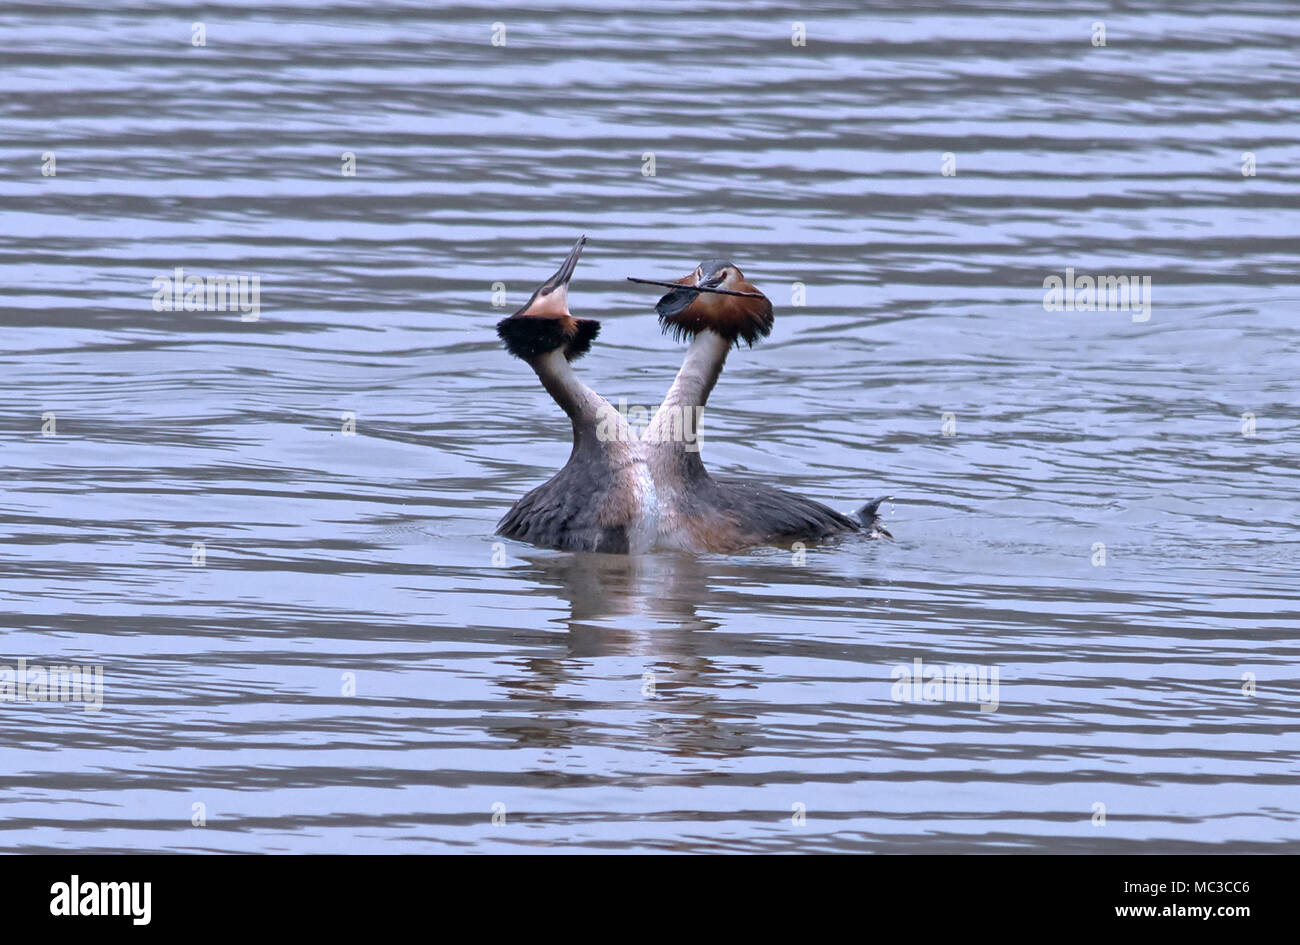 Great Crested Grebes-Podiceps cristatus perform weed dance. - Stock Image